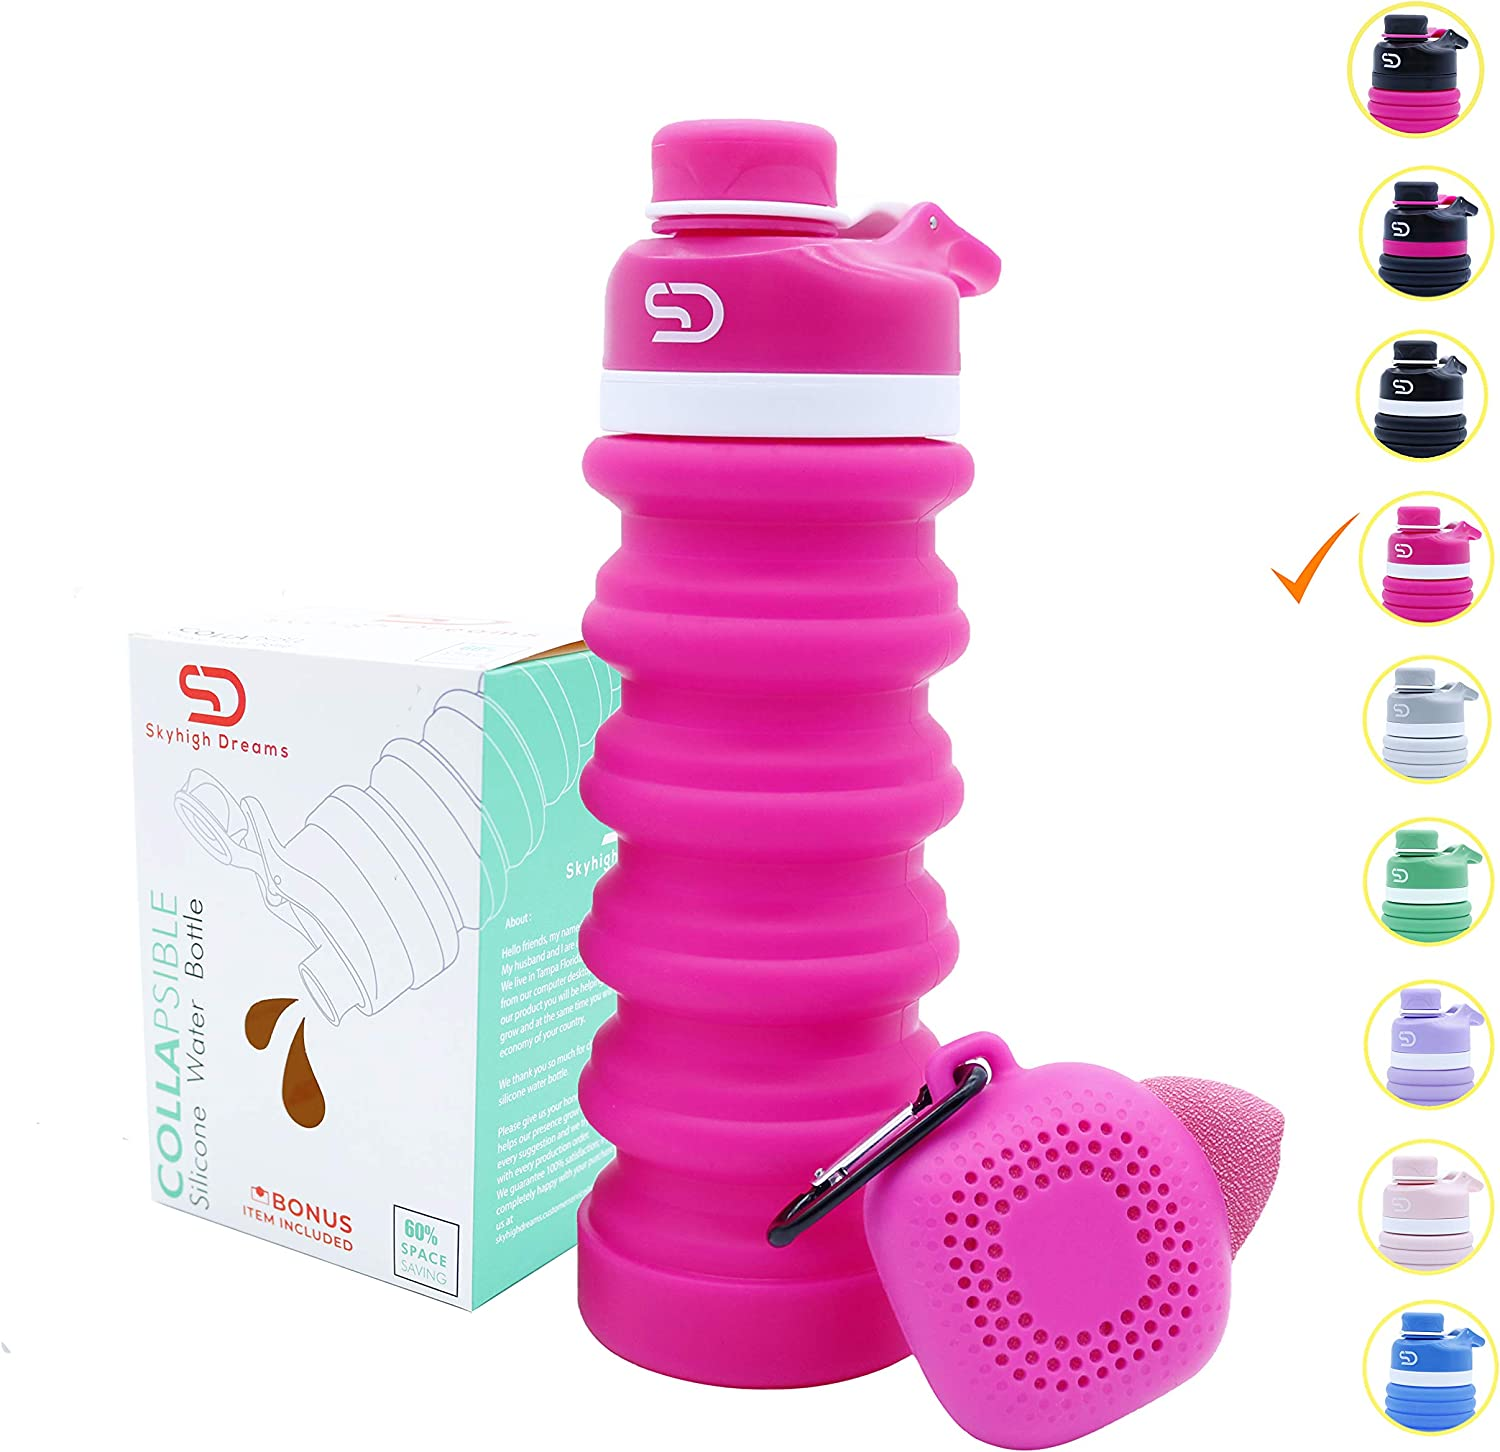 Skyhigh Dreams Silicone Water Bottle